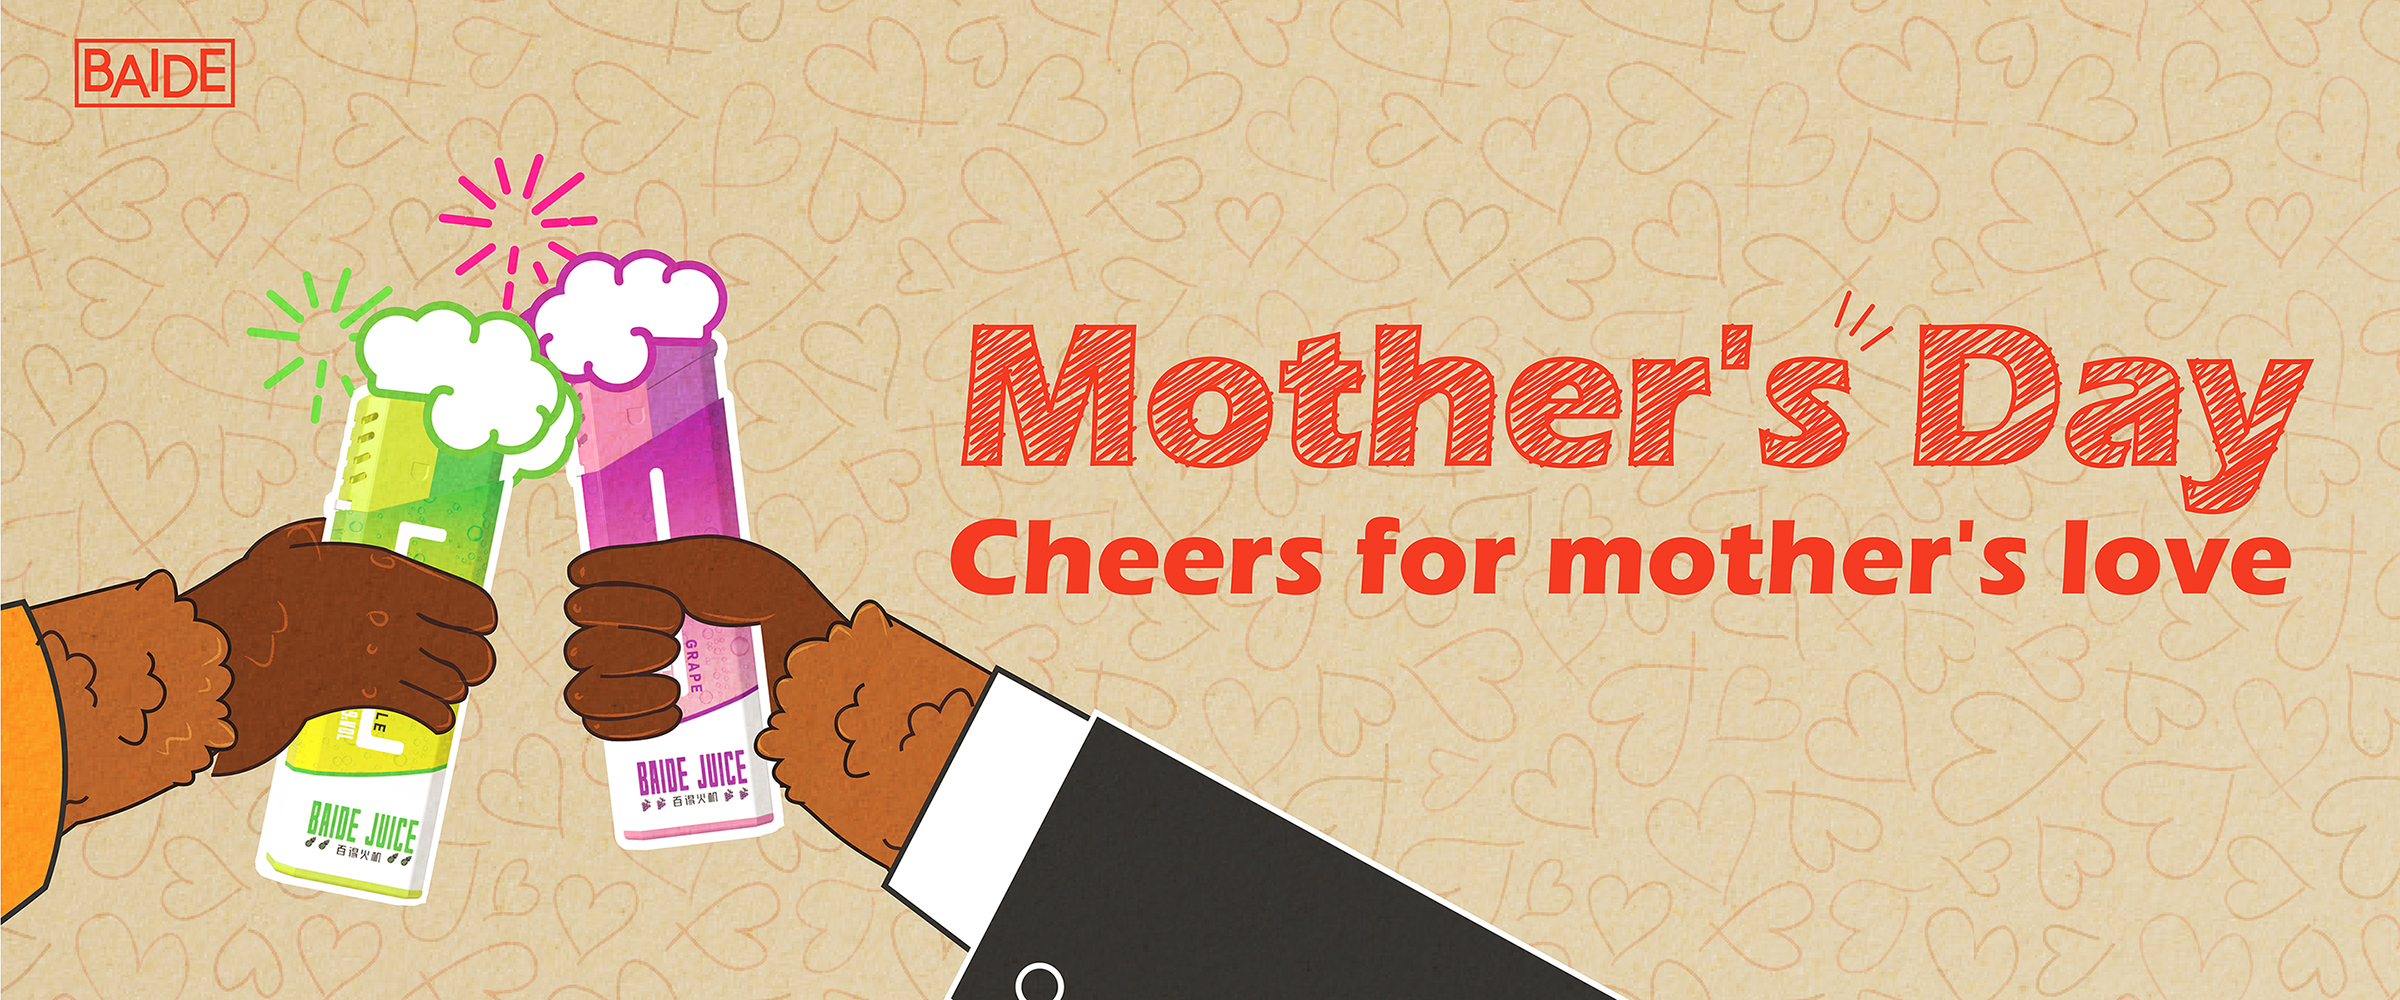 Mother's Day: Cheers for mother's love